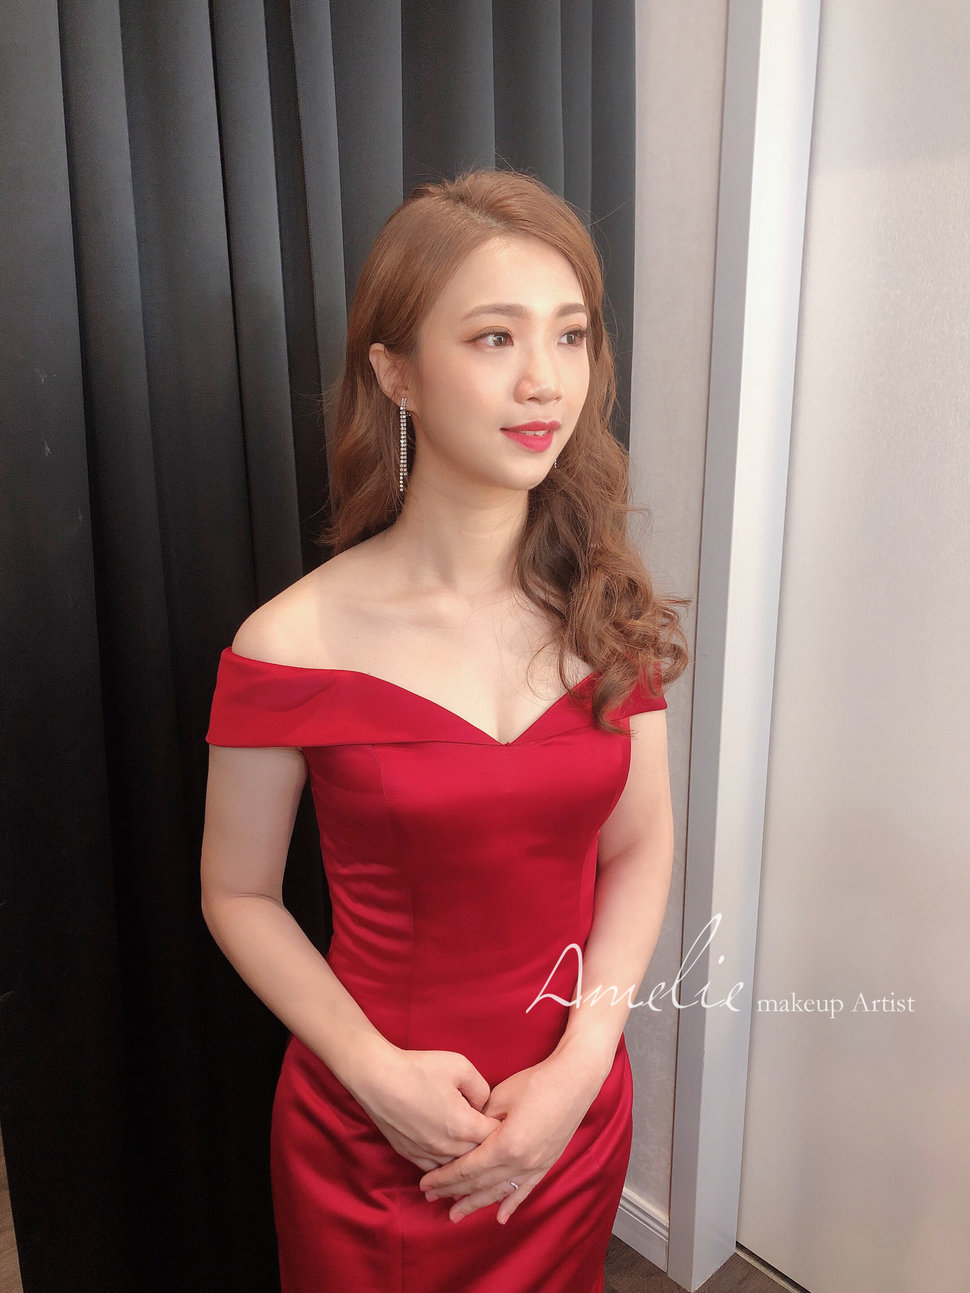 Zoey結婚送客造型01 - 婚禮造型 Amelie makeup《結婚吧》